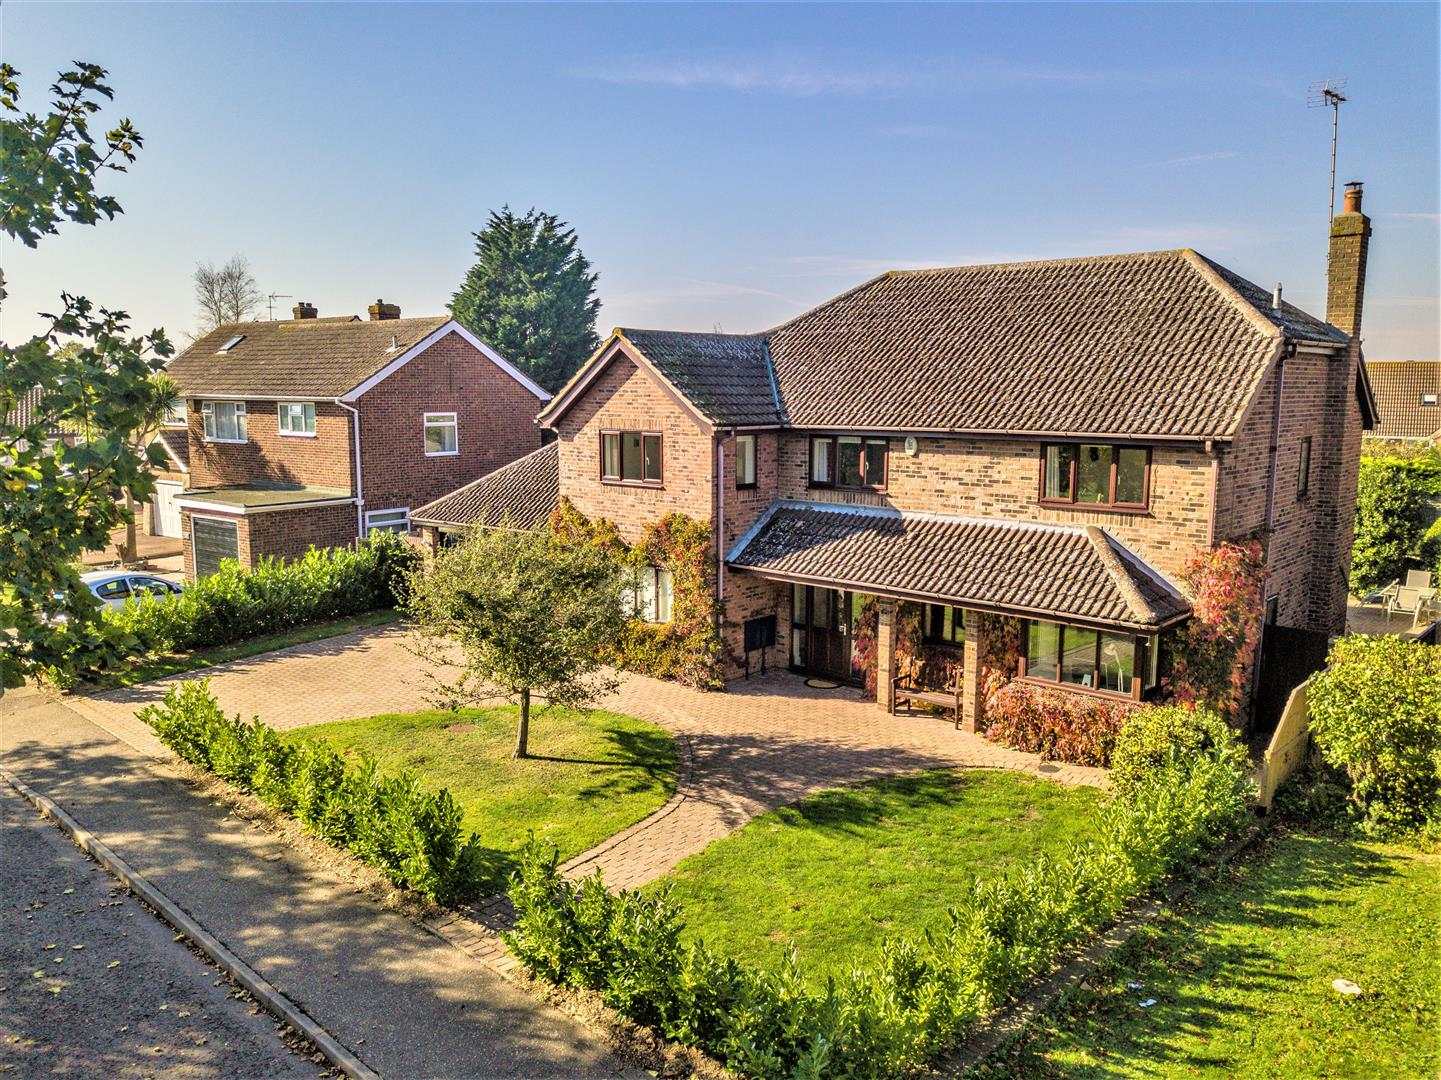 Bardfield Way, Frinton-On-Sea, Essex, CO13 0AN